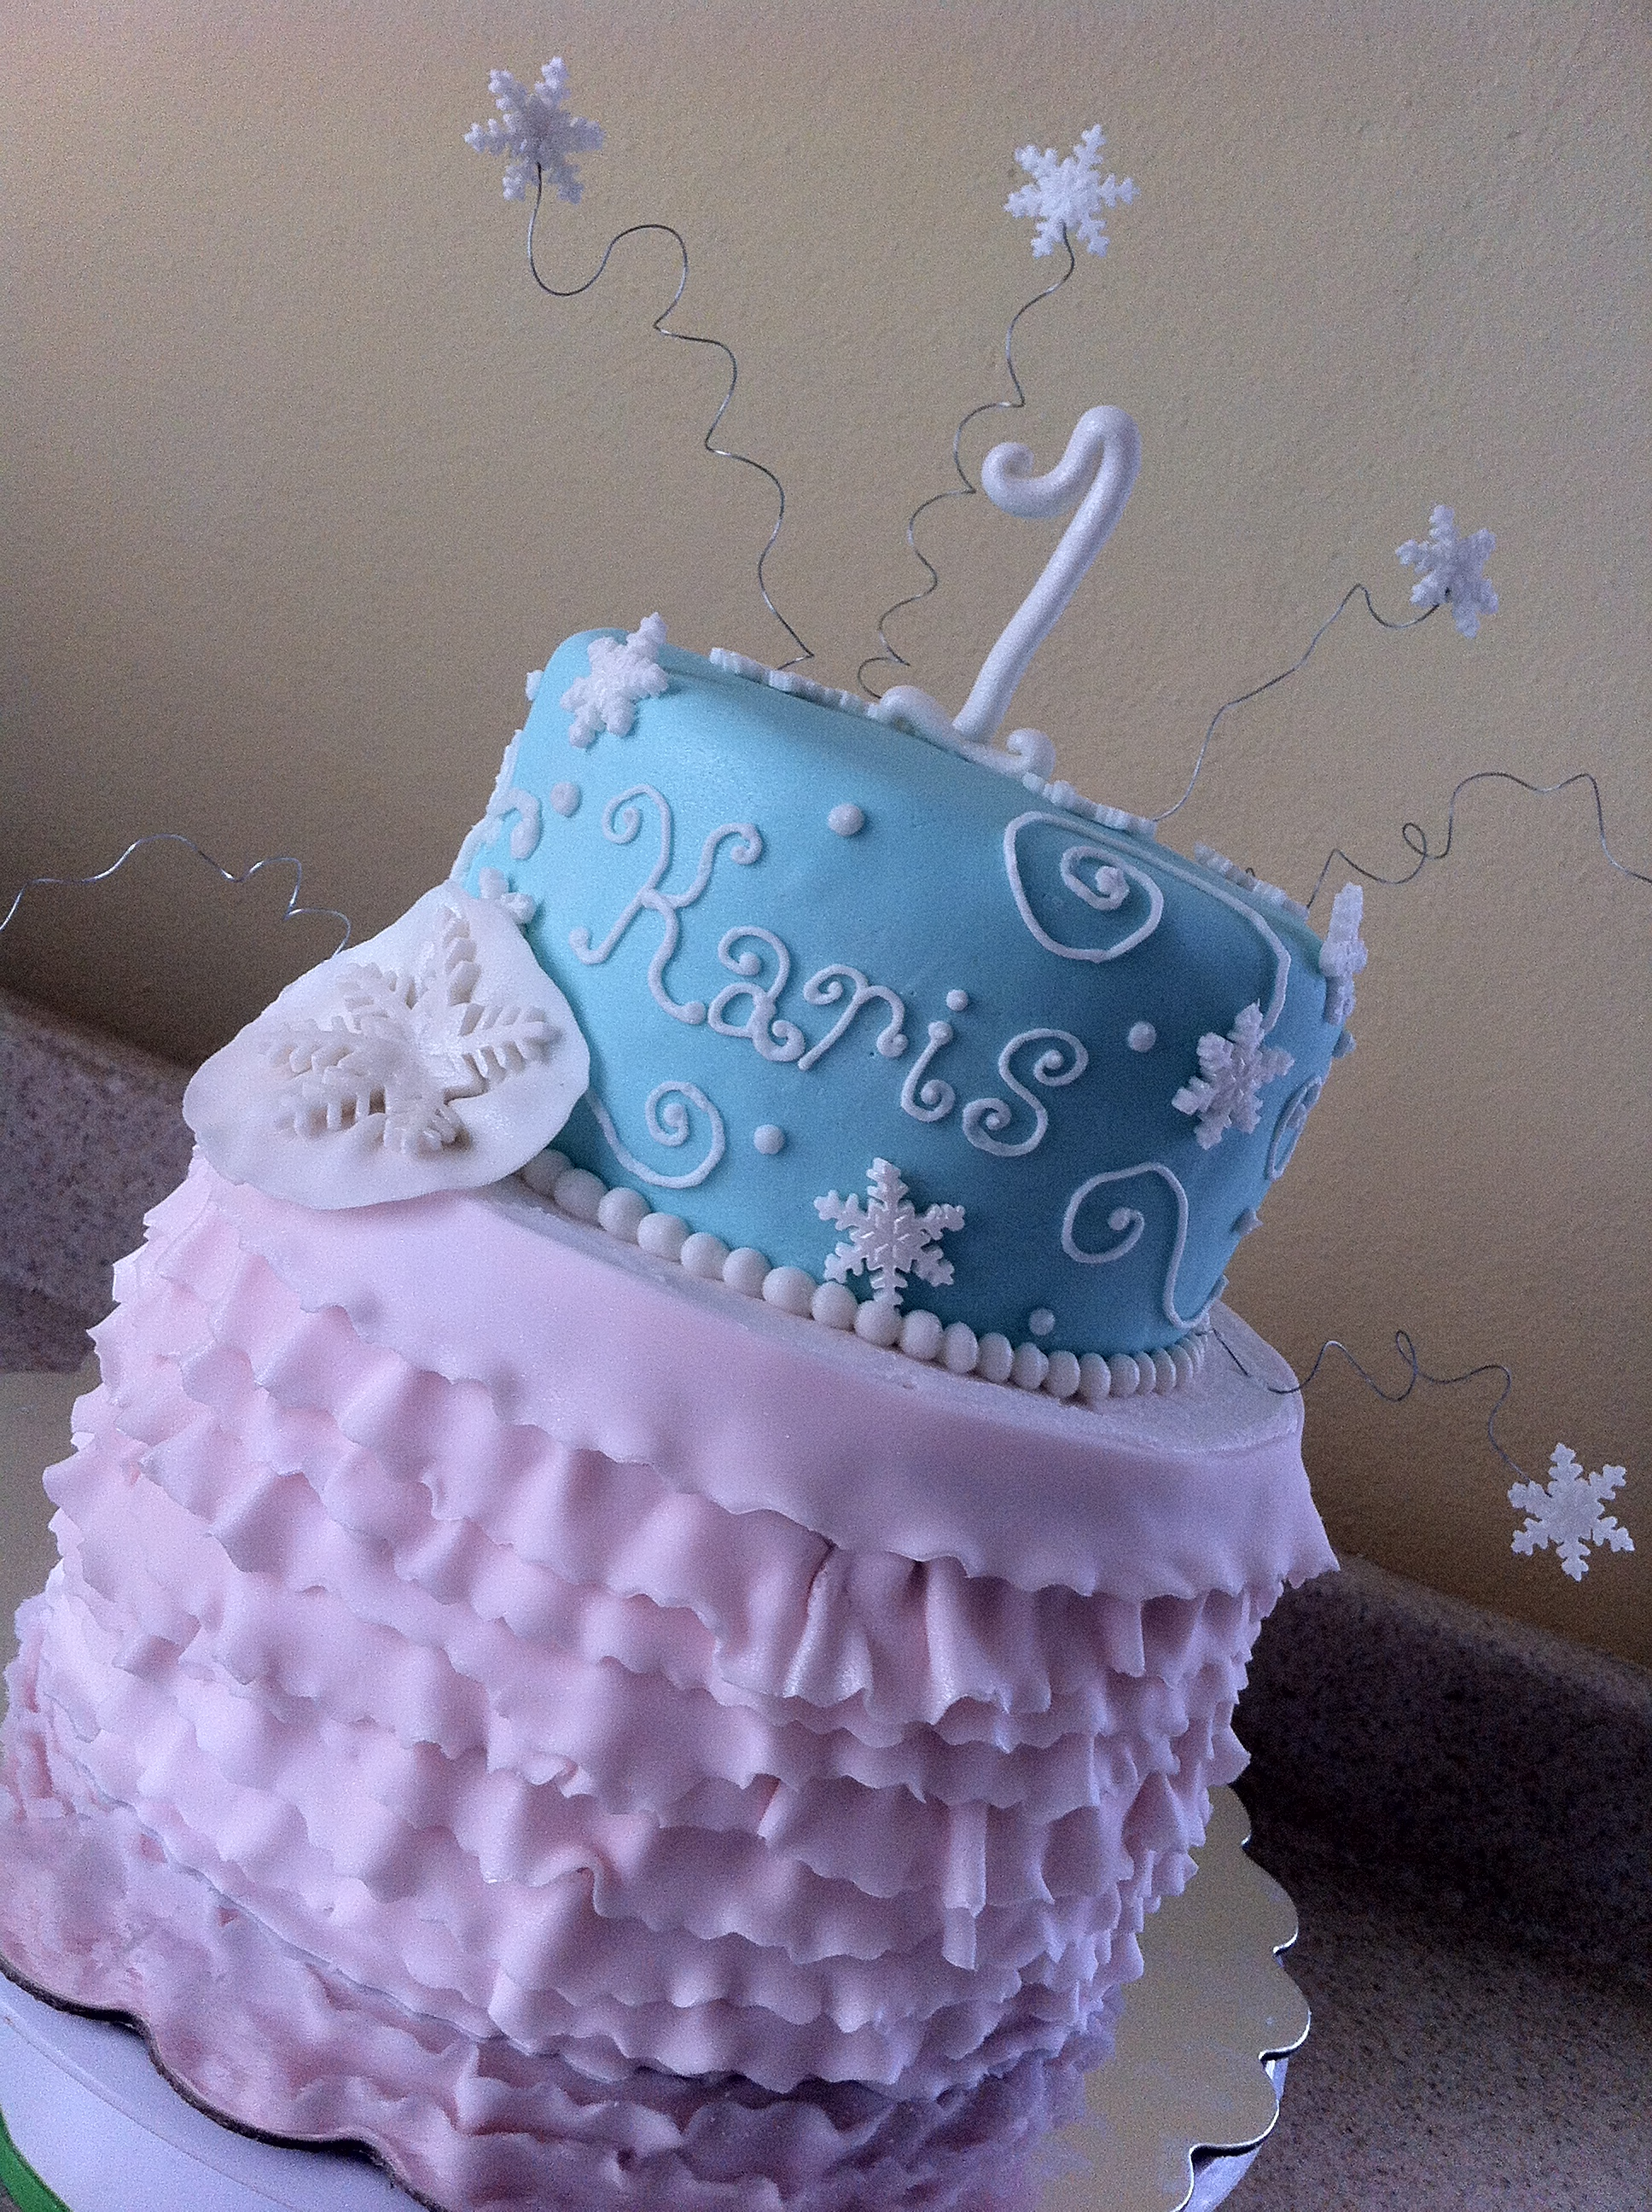 Sensational Snowflake Birthday Cake Lolos Cakes Sweets Funny Birthday Cards Online Alyptdamsfinfo